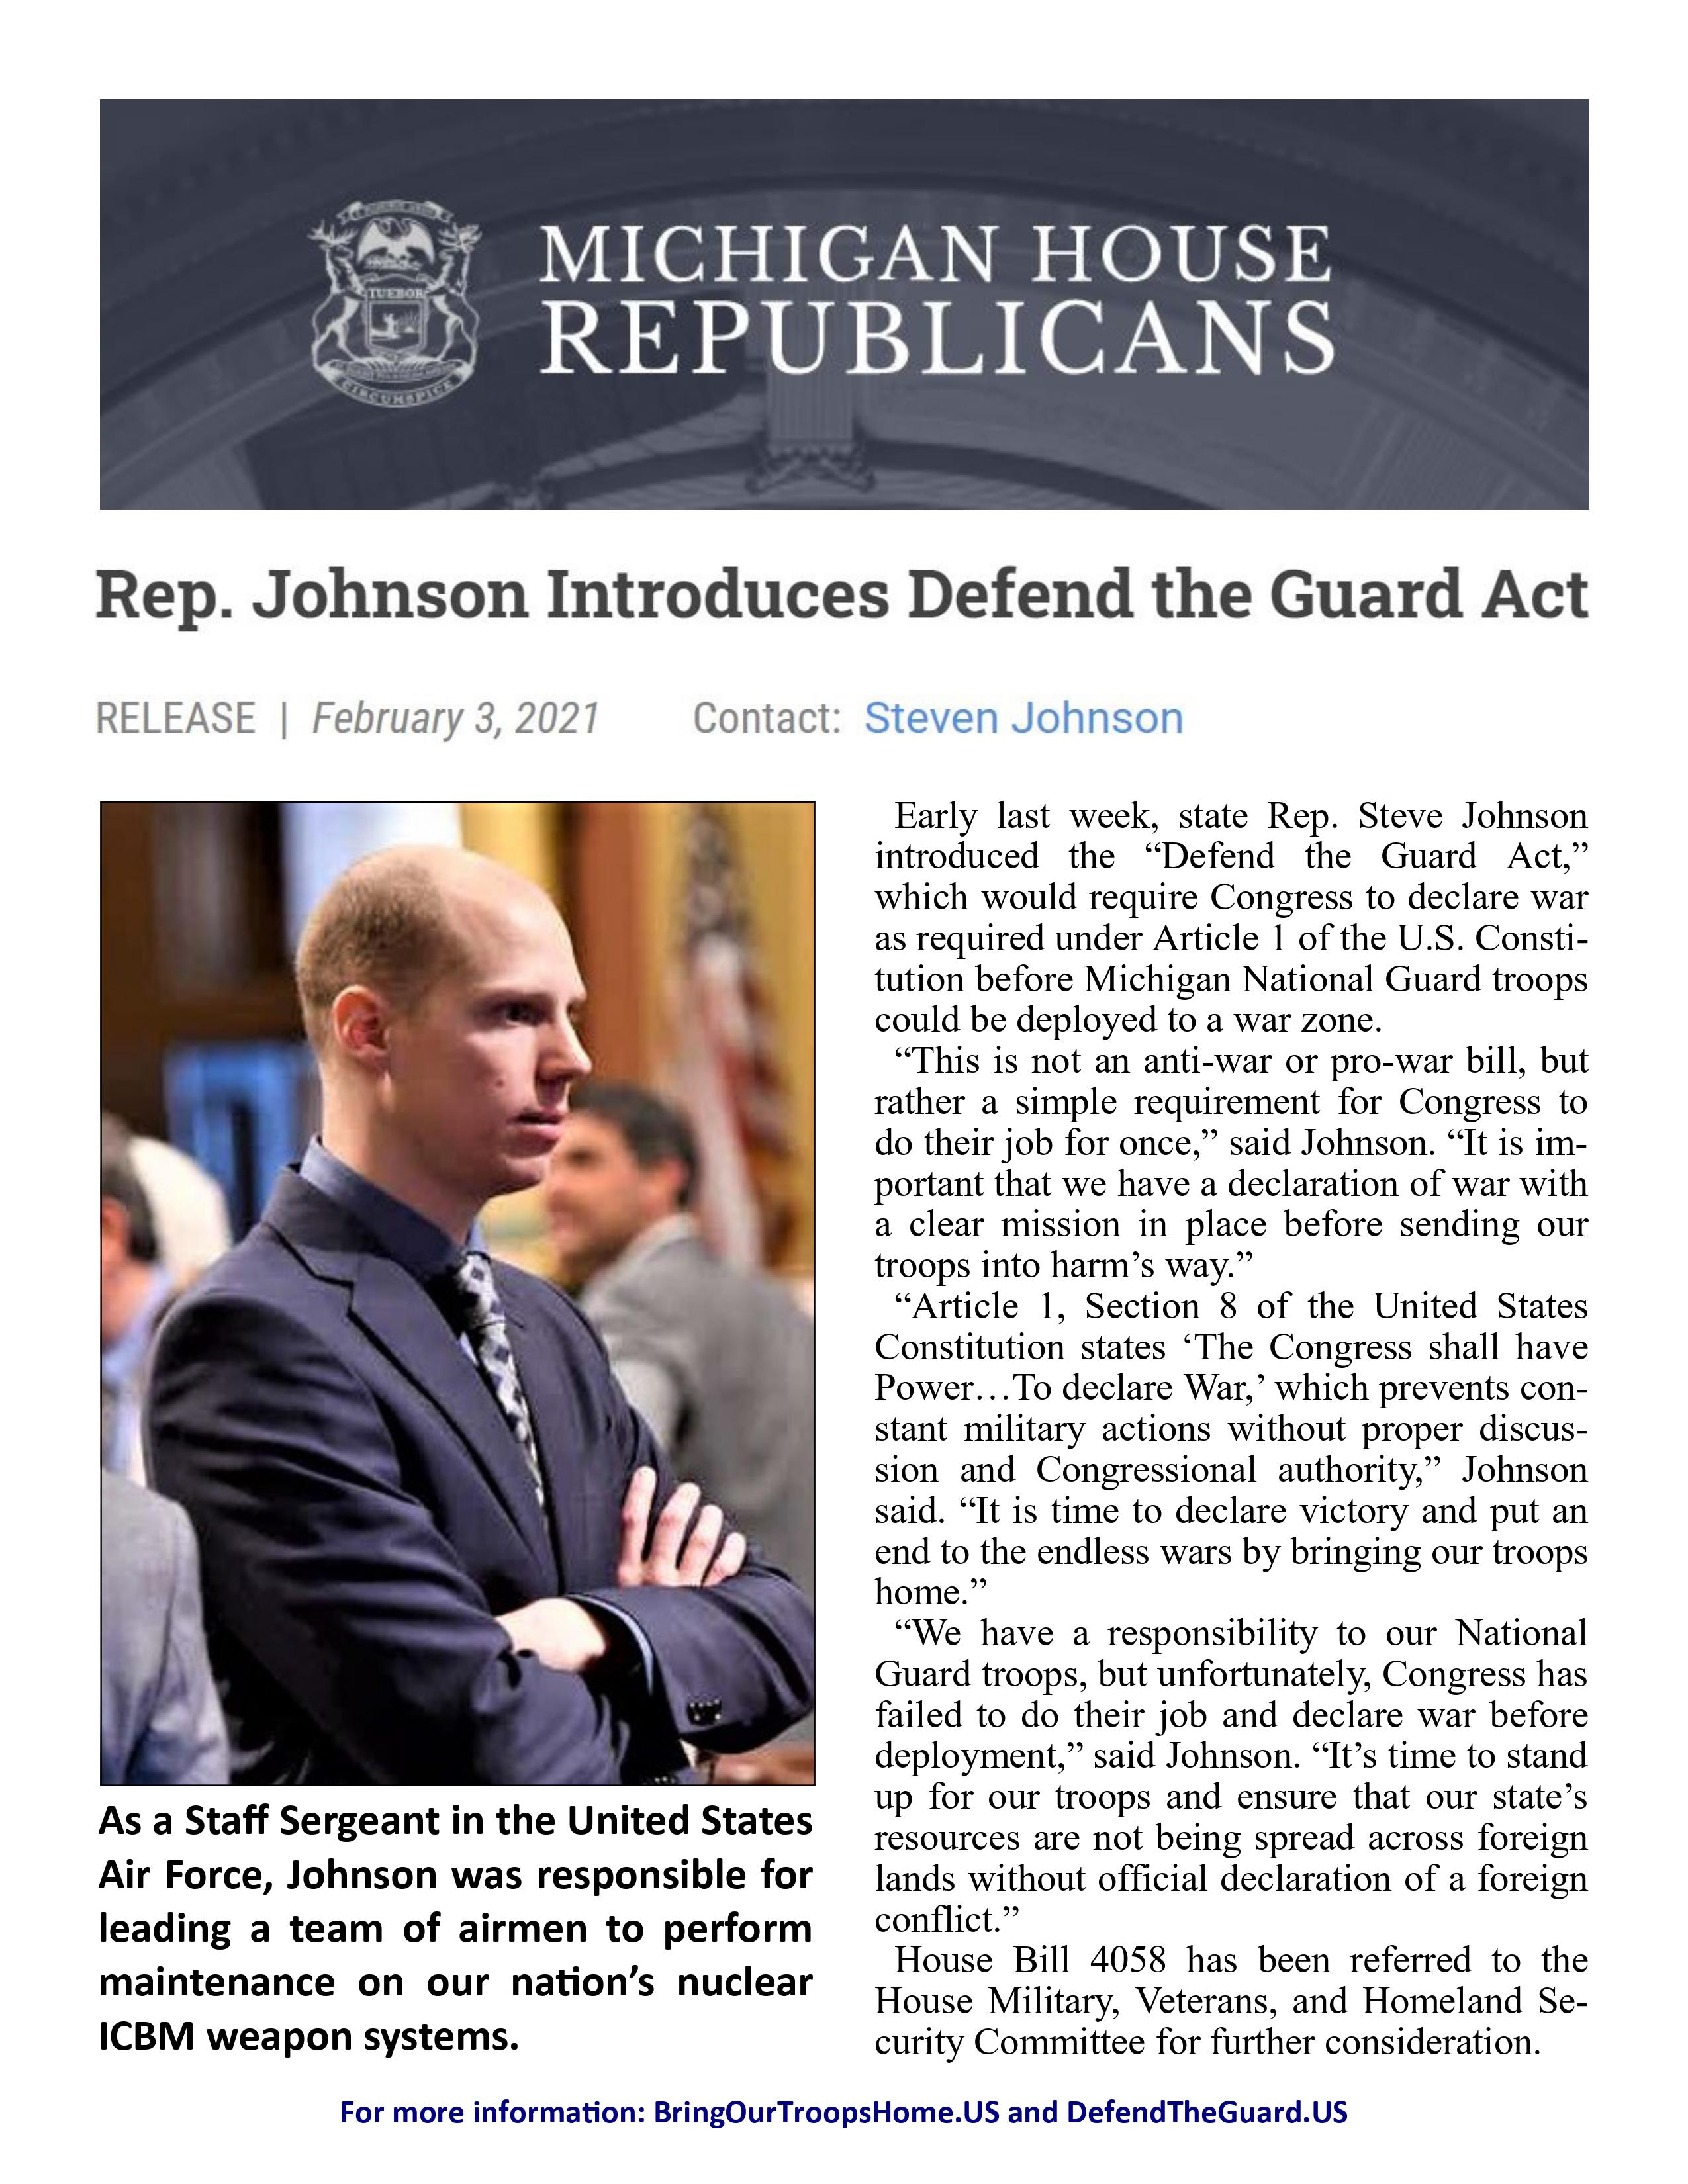 Rep. Johnson Introduces Defend the Guard Act